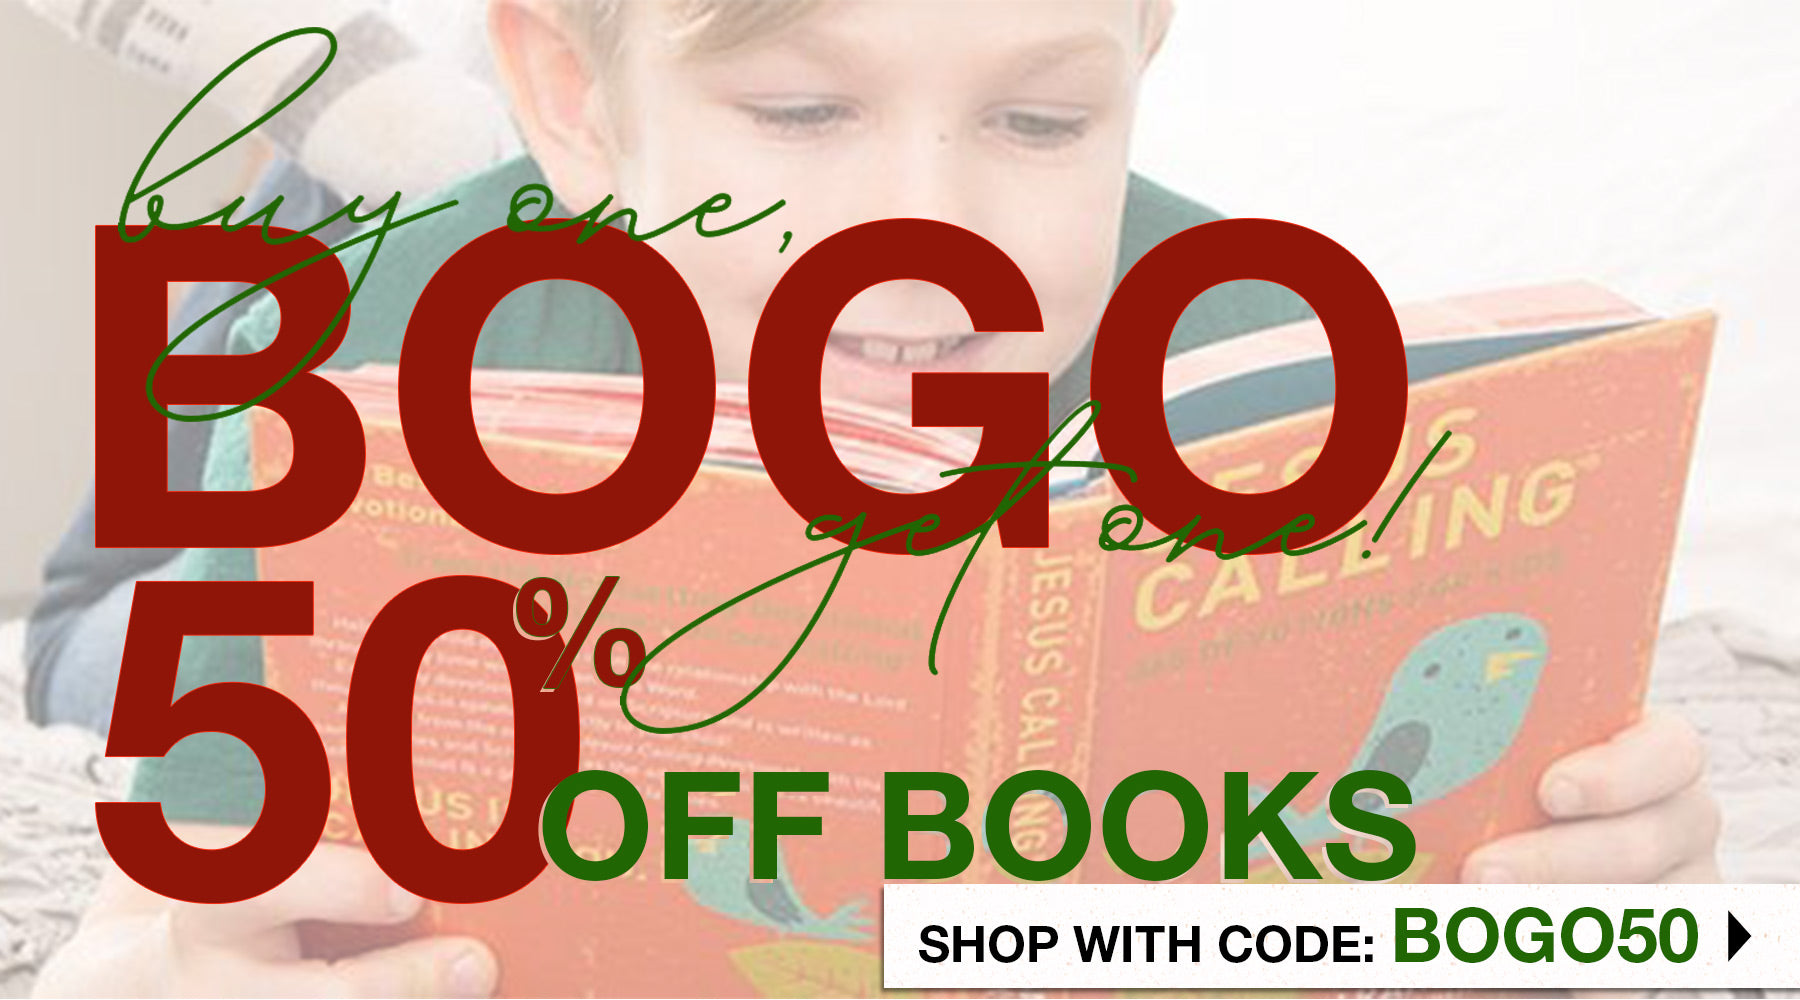 Books - Buy one, Get one 50% off